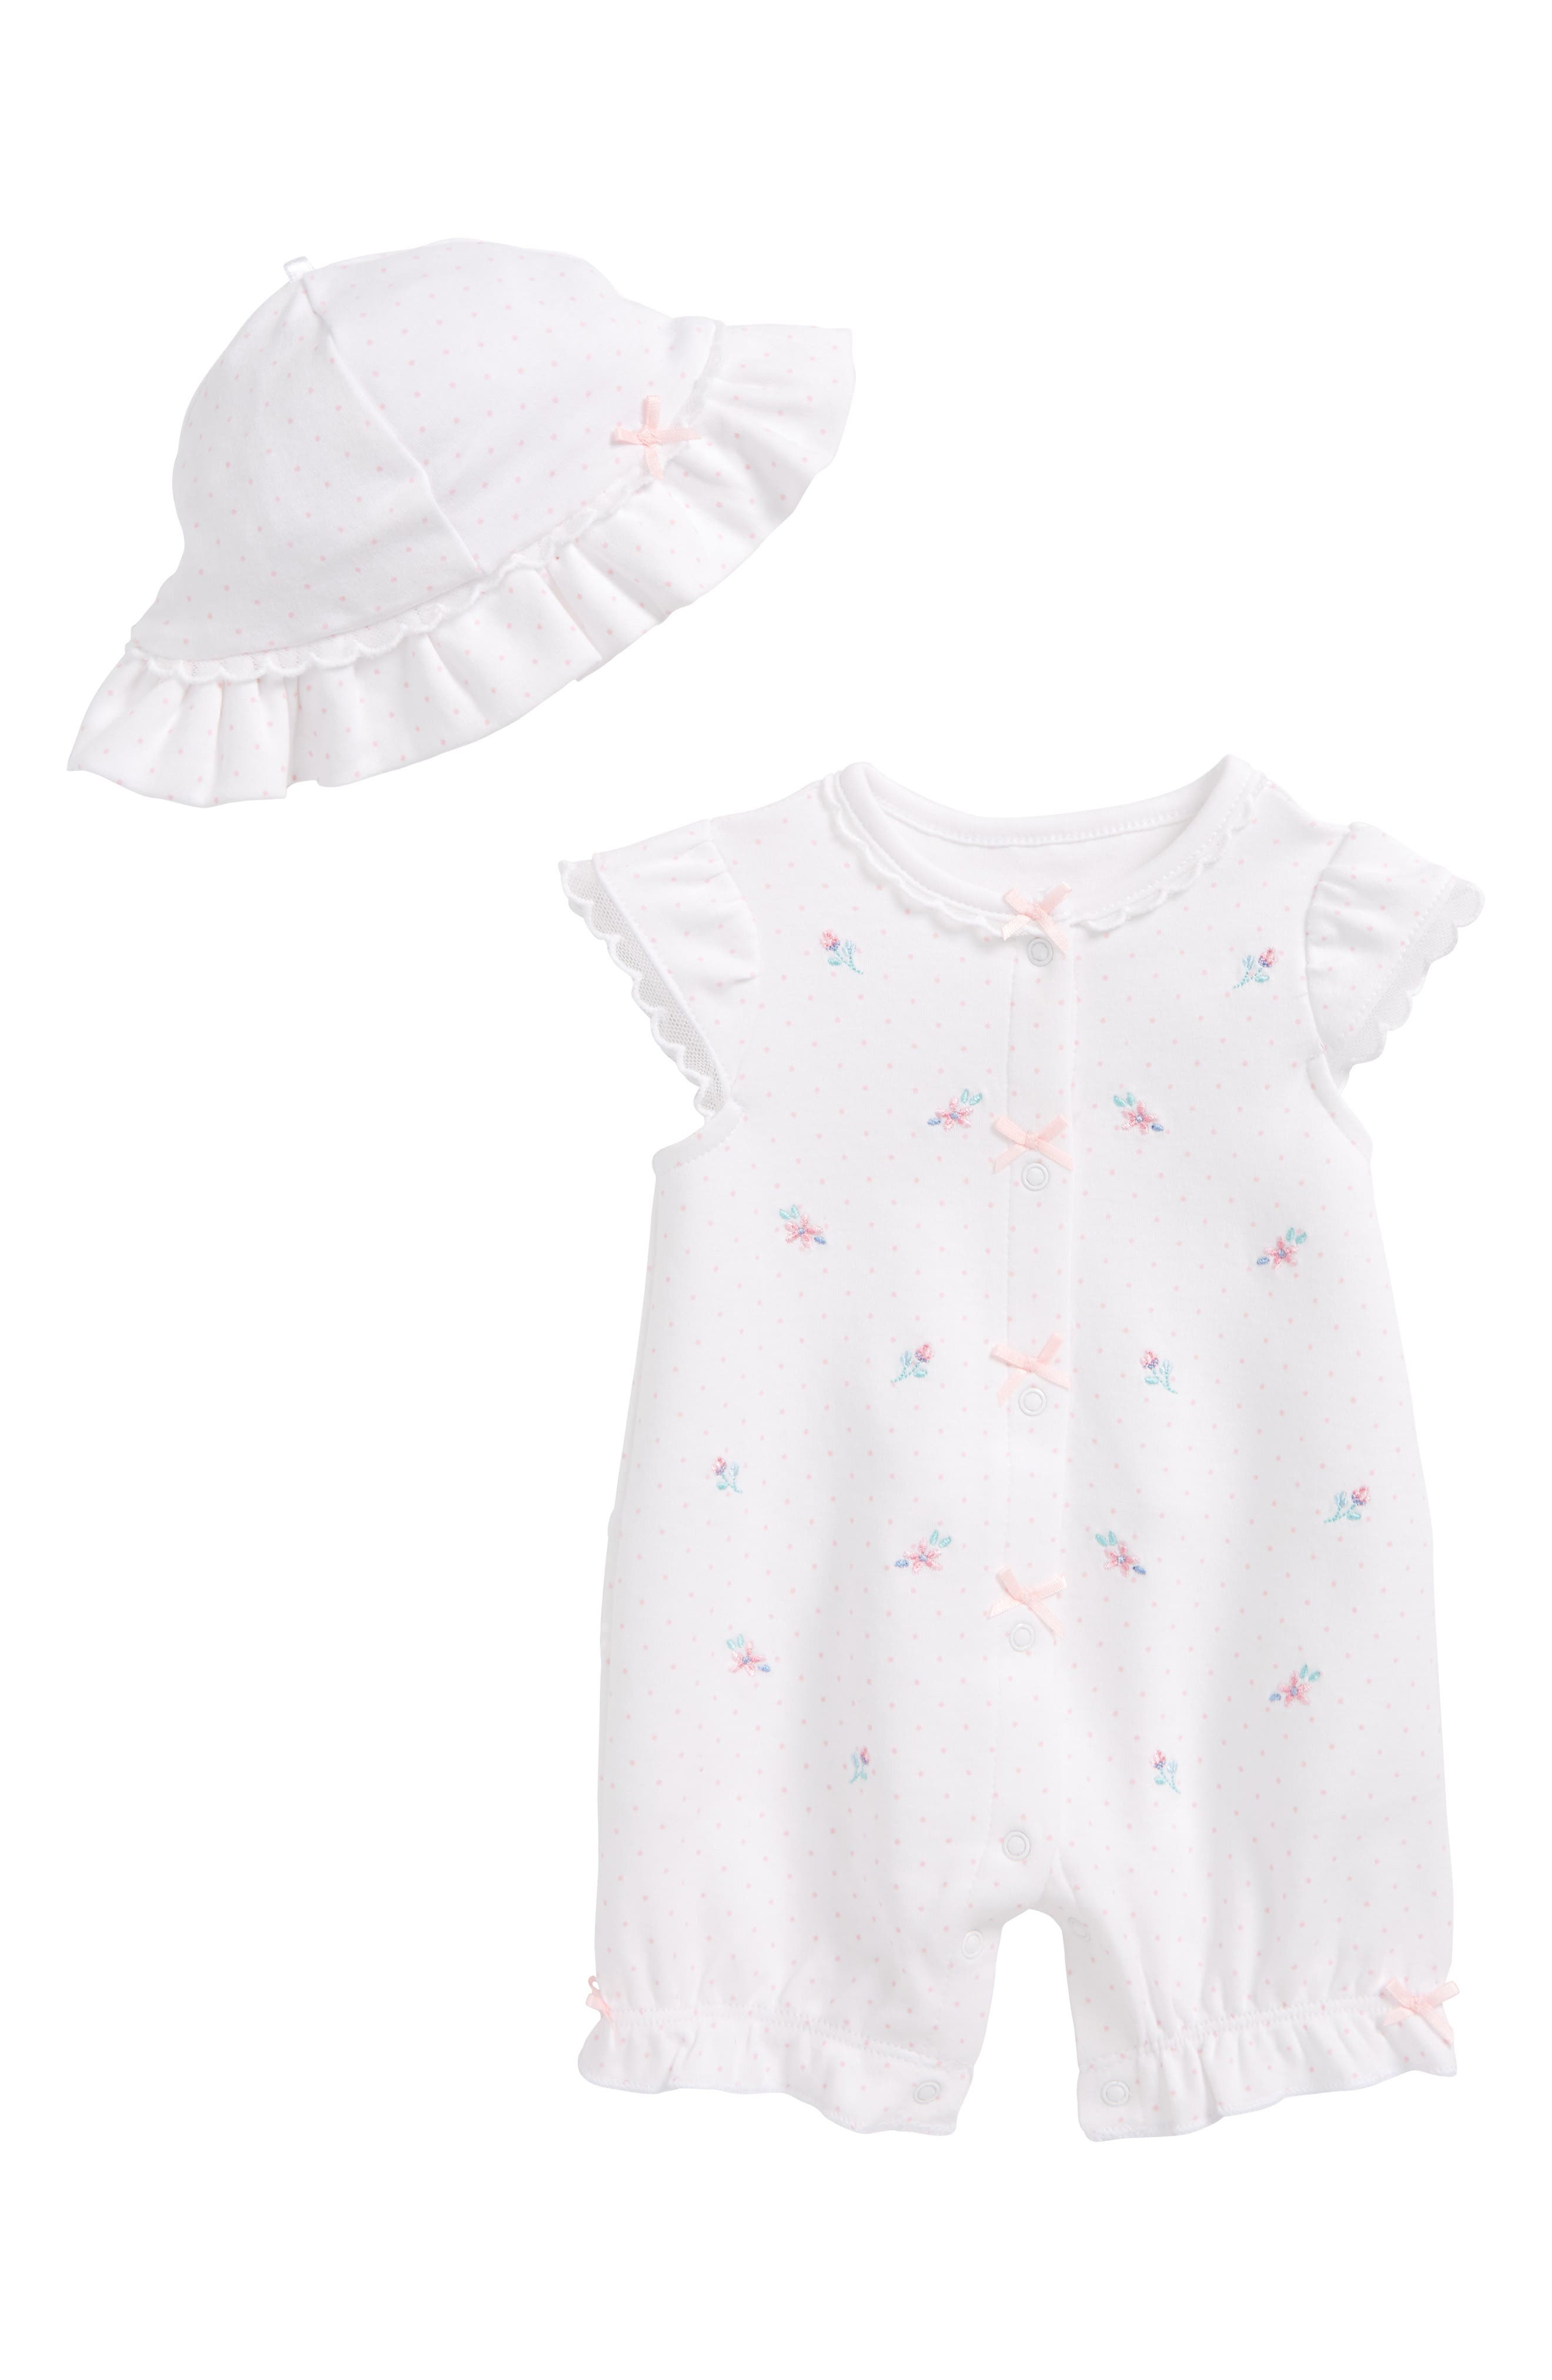 Whimsical Romper & Hat Set,                         Main,                         color, 118